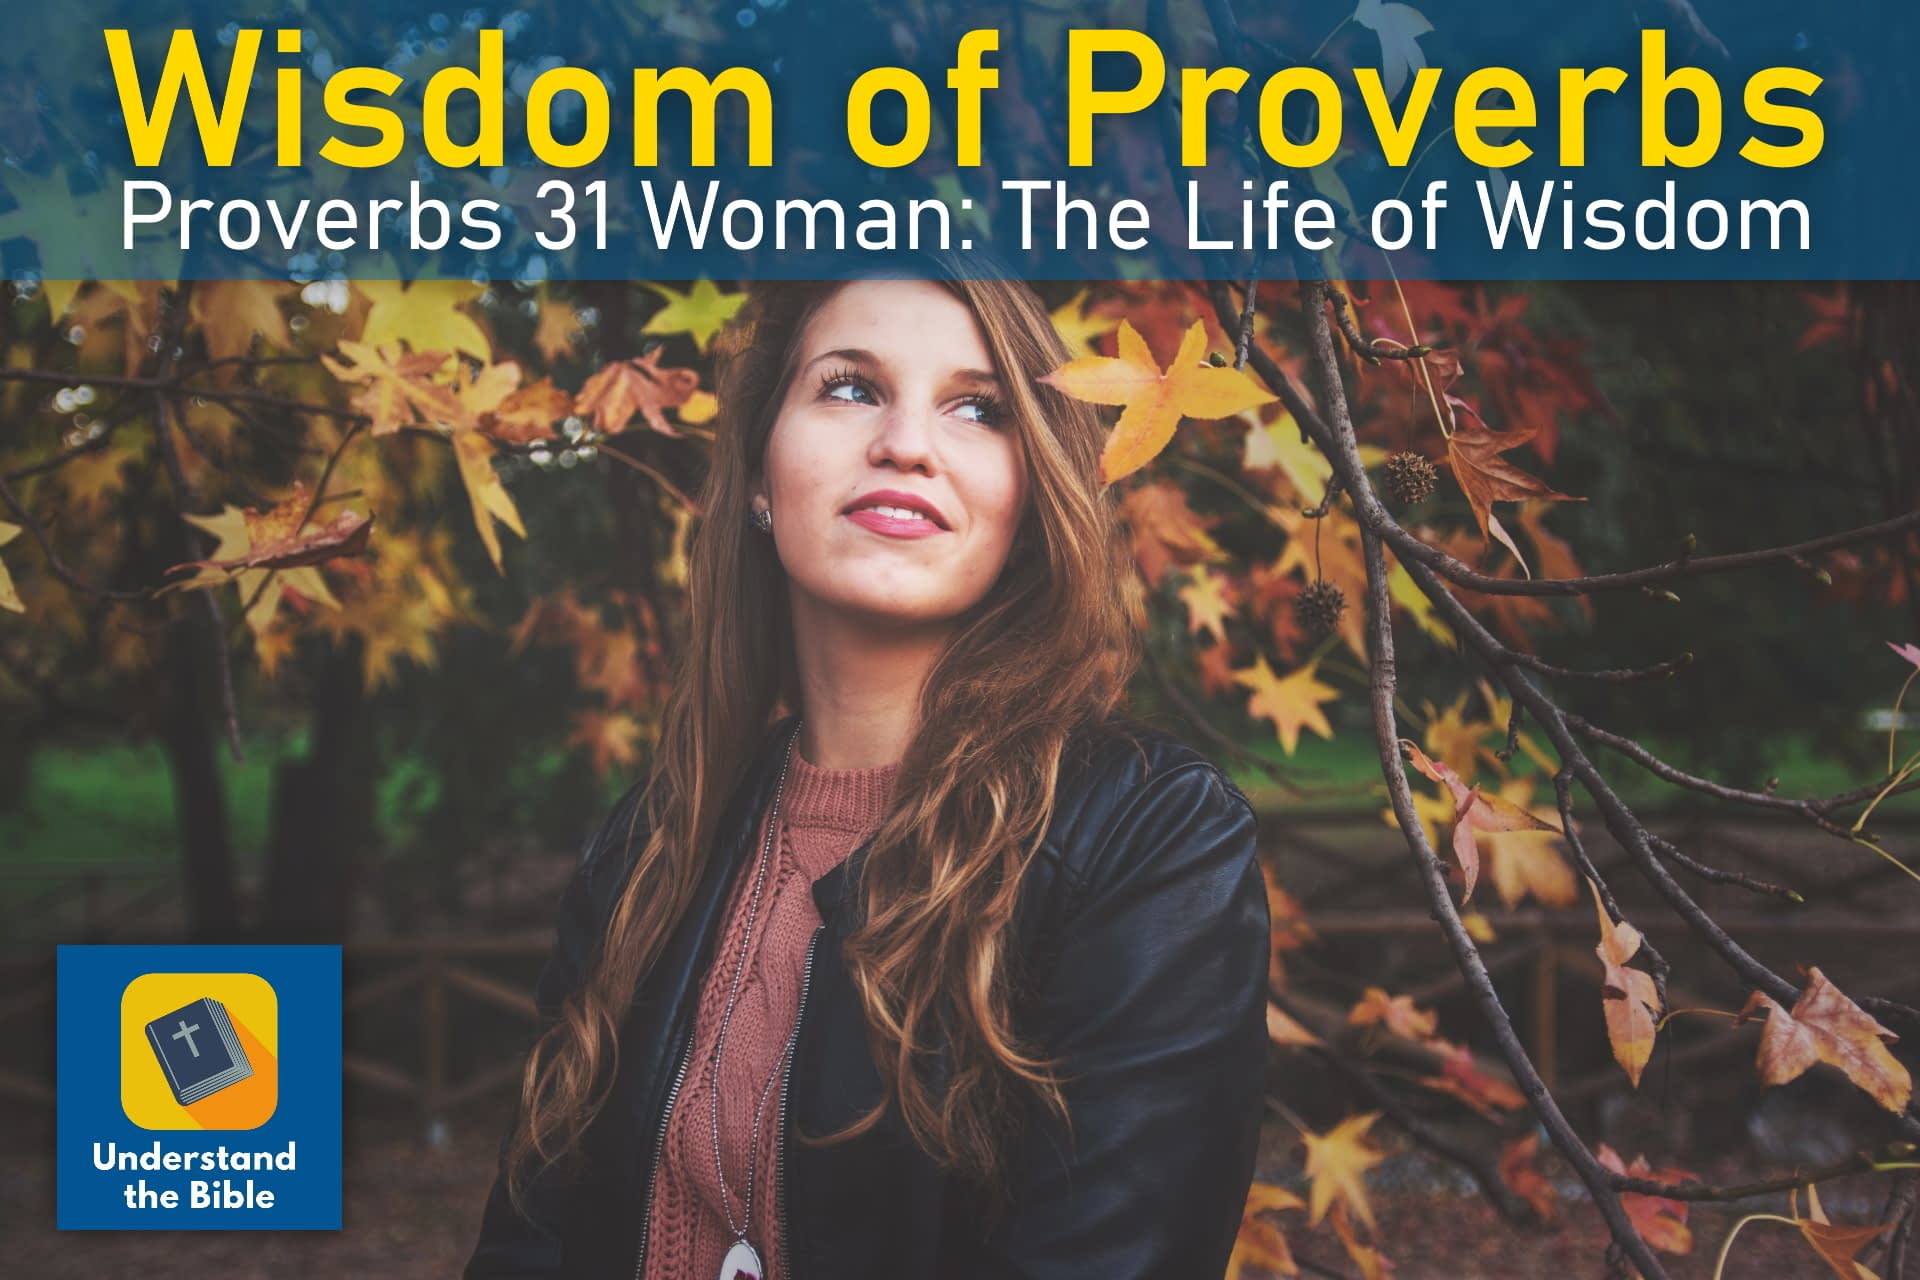 The Proverbs 31 Woman: The Life of Wisdom